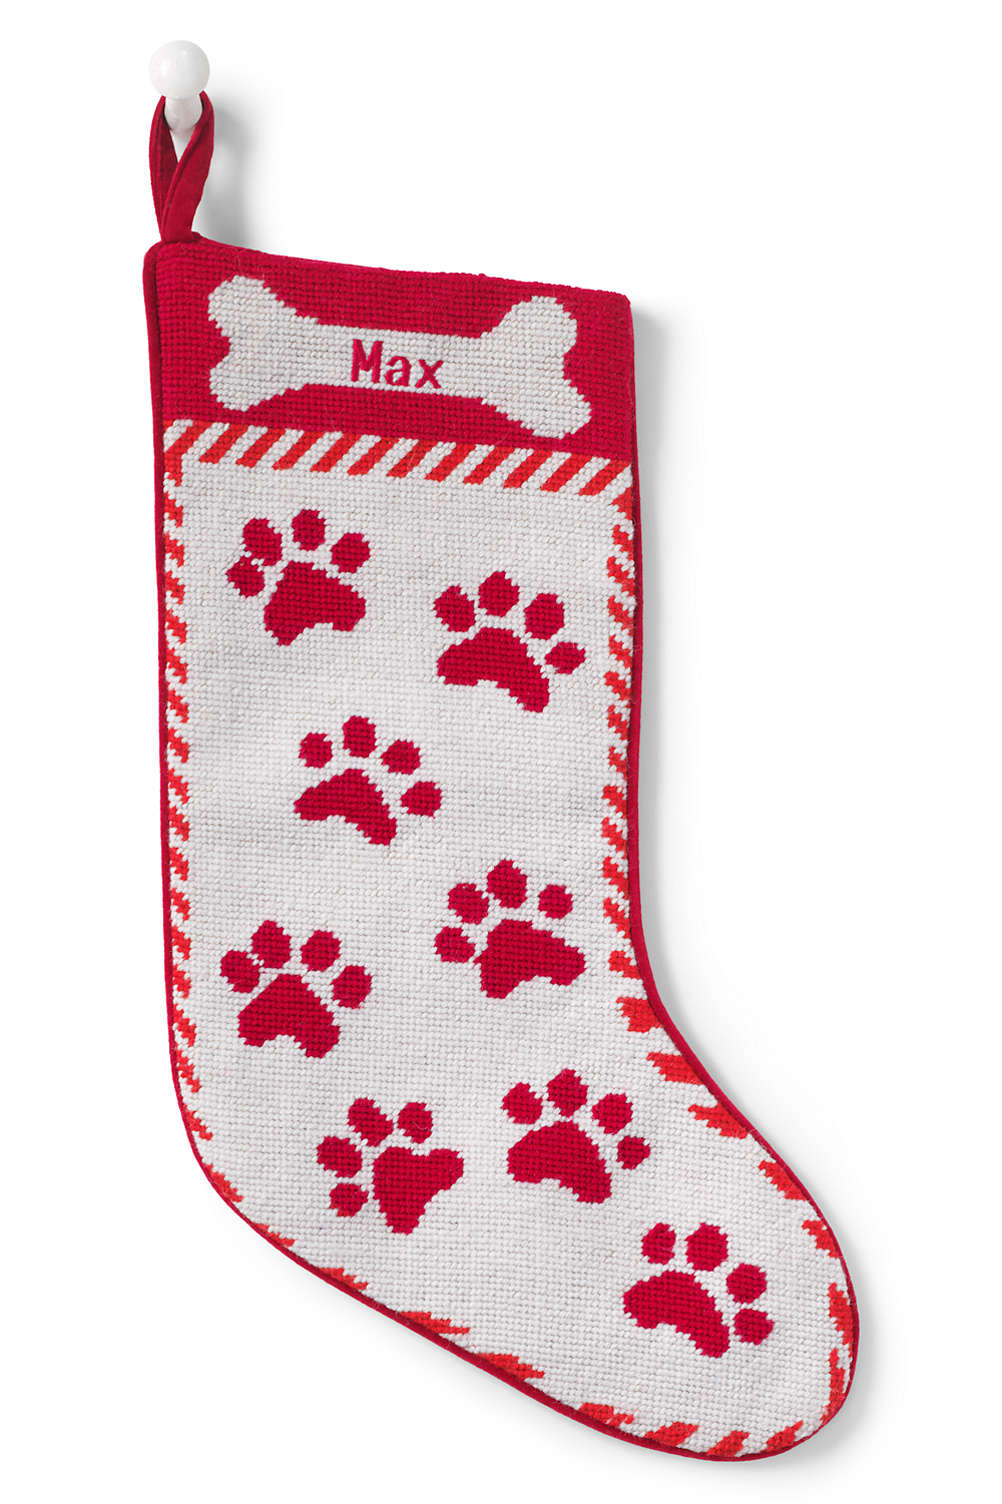 Lands End Christmas Stockings.Needlepoint Personalized Christmas Stocking For Pet